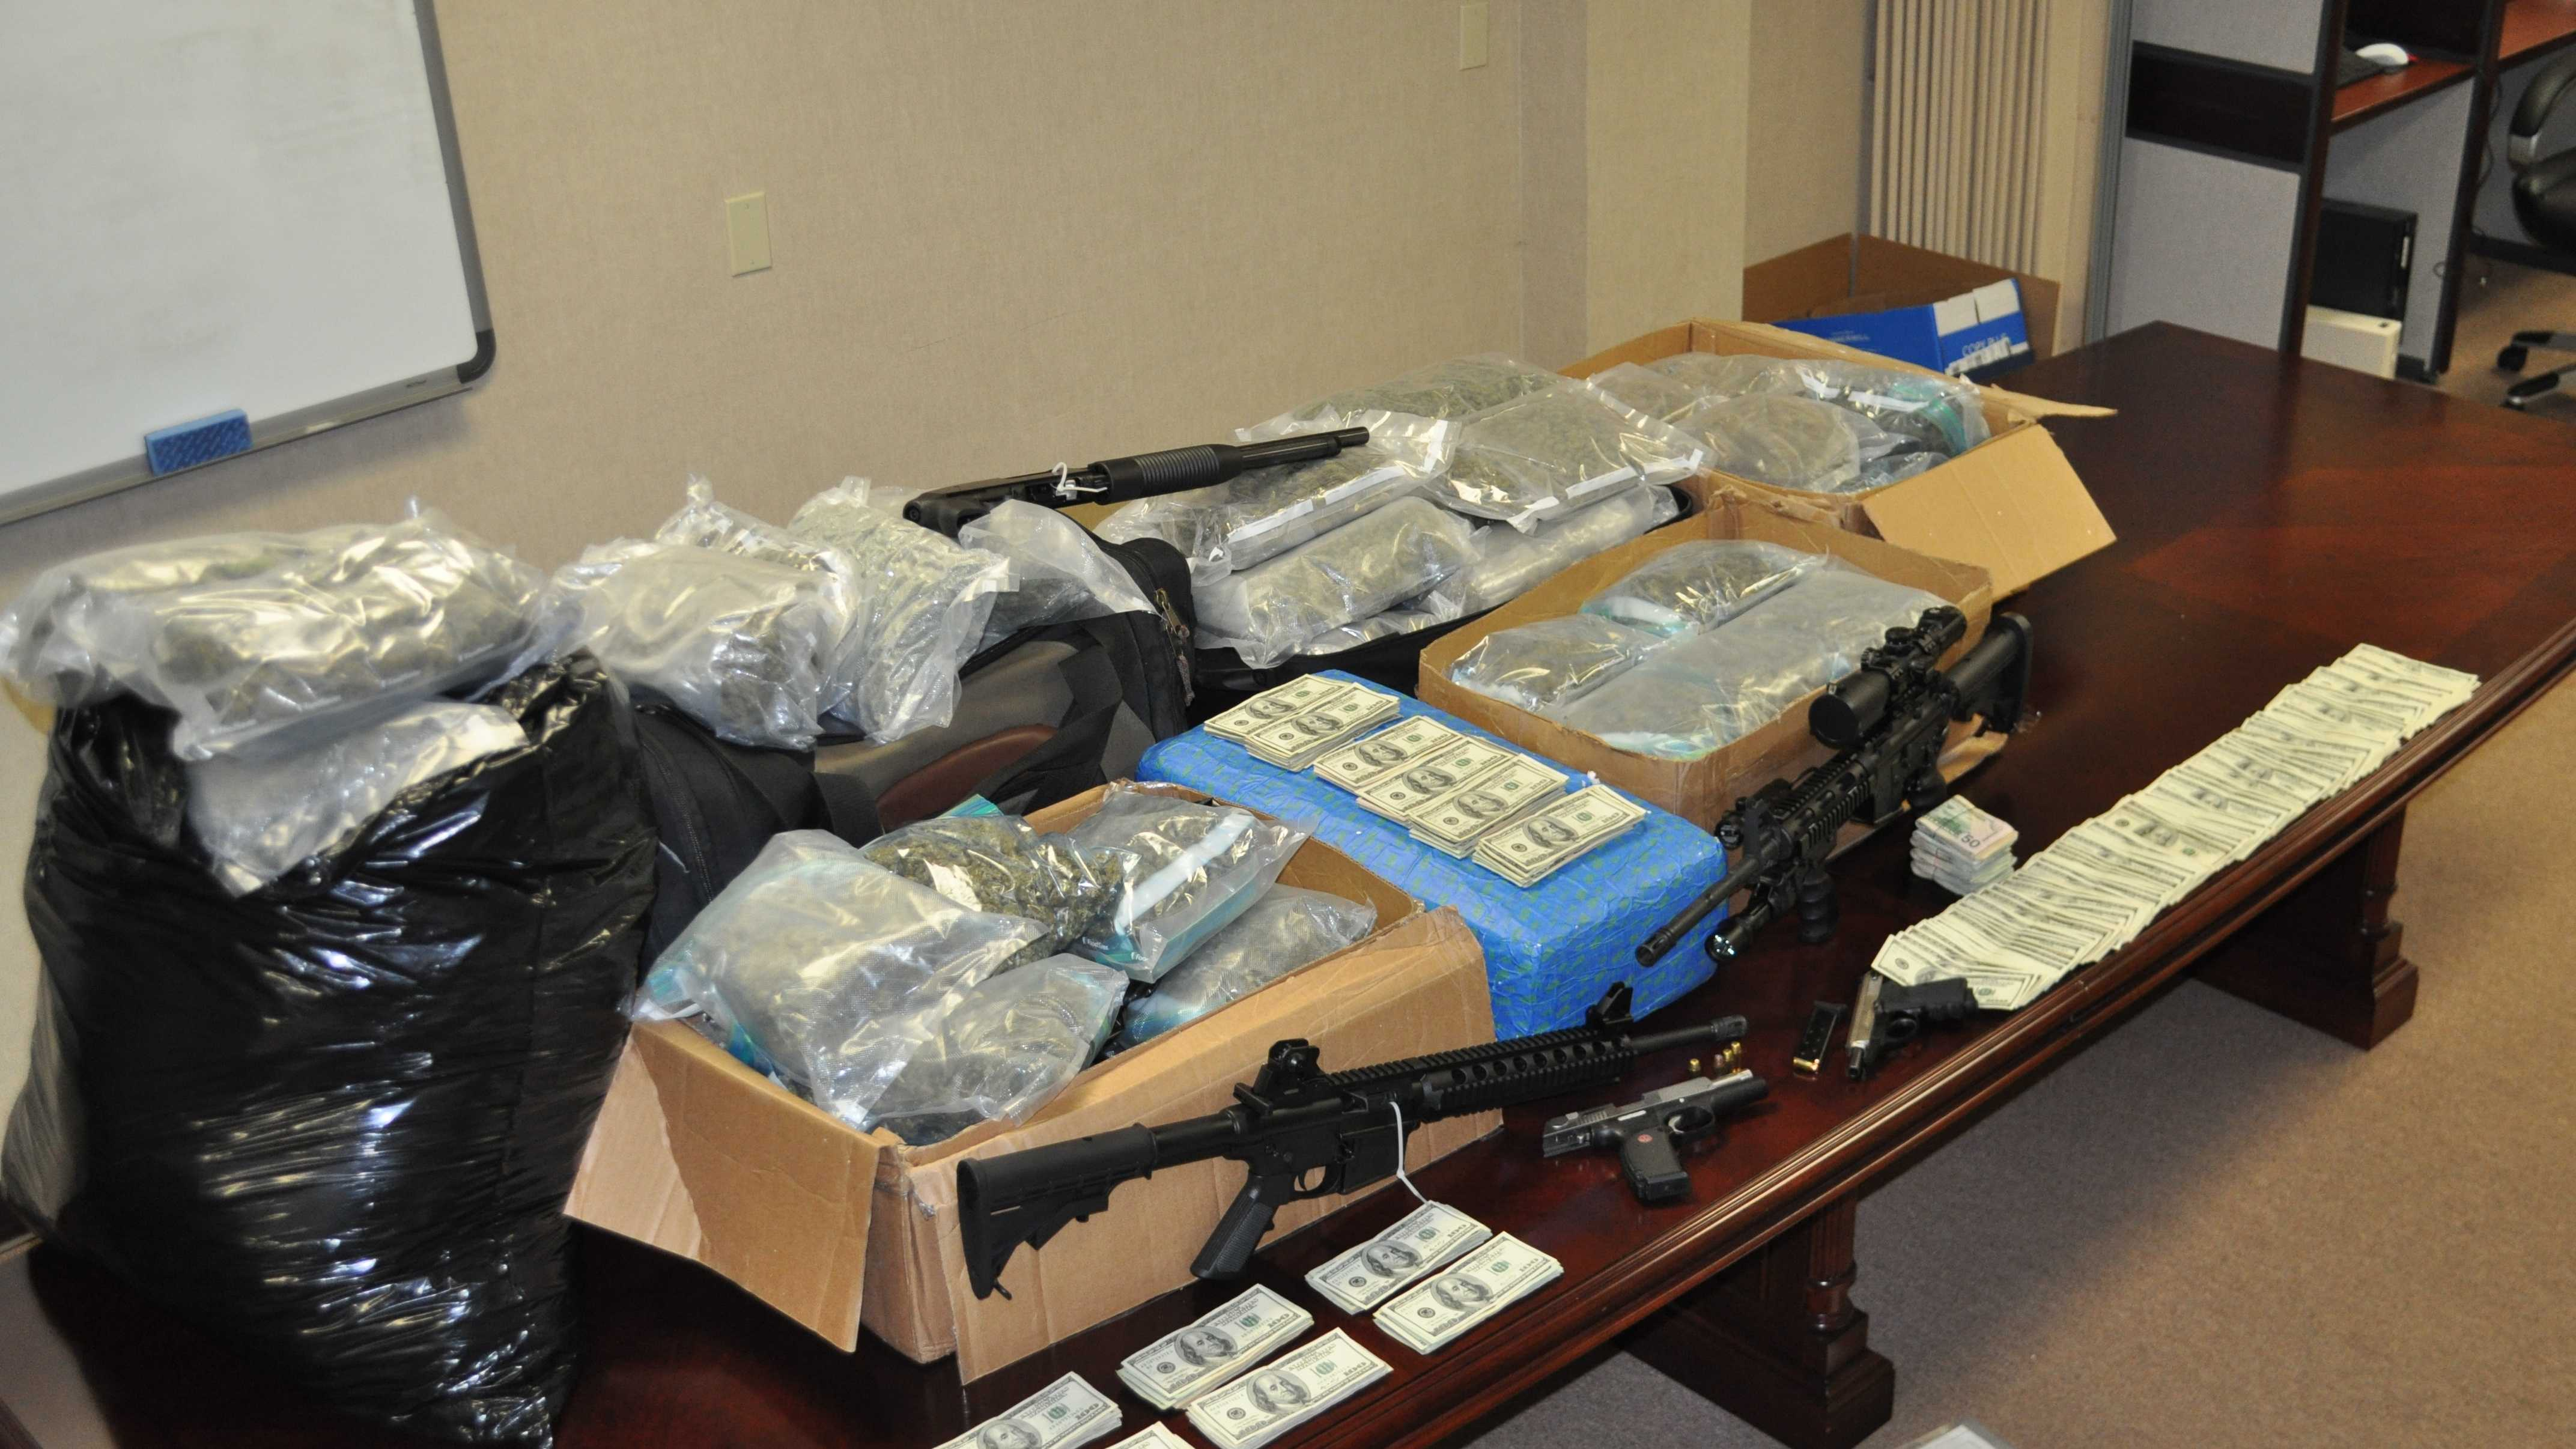 The Harford County Sheriff's Office says after a two-year investigation into a smuggling operation, it seized 140 pounds of marijuana, 20 guns, 14 vehicles and more than $140,000 in cash.